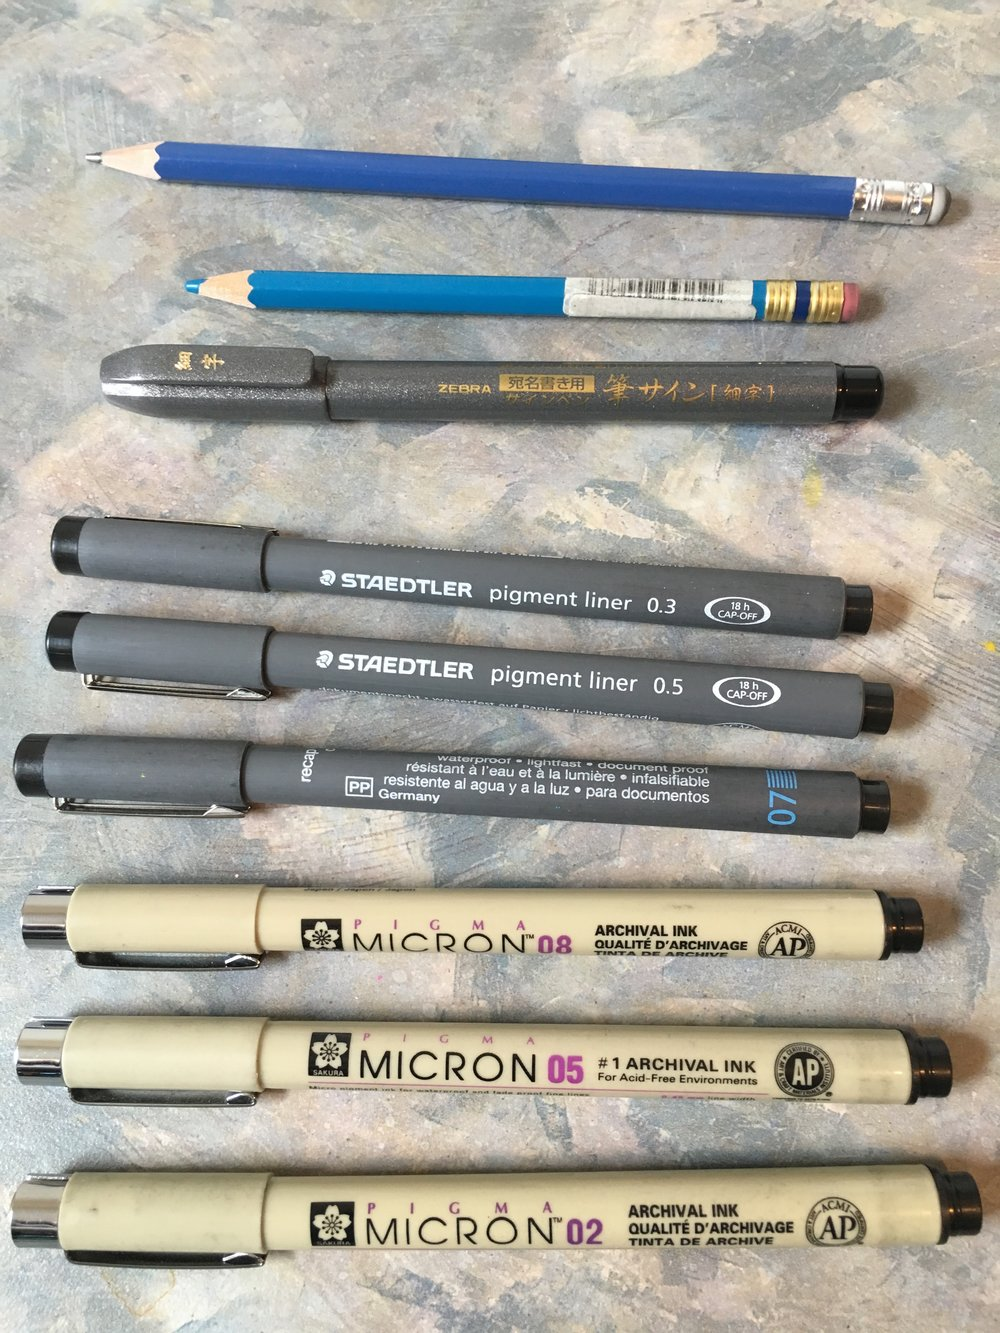 For my line art, these are my standards. More delicate artists will use finer calibers of pen, like 0.01 and 0.05 to get those engineering blueprint fine kinds of detail, however I find I end up destroying the nibs on pens that skinny at a costly rate, so I tend to stick with bigger, heartier fare.   I prefer Staedtler for general, HB (dead even between light and dark) pencil, though lately I've shifted away from graphite to using animation pencils for my initial sketching. I swear by the Col-Erase brand, esp. blue red, and purple, and I must not be alone as the one's I like are typically the low or no stock at the local art shops.   I use Staedtler Pigment liners when I'm being more sketchy and playful when I ink, likely due to a less defined initial sketch. For more deliberate, delicate, or precision inking, I prefer the Pigma Microns, the have less flexibility in their tip, but deliver a smooth, consistent, beautiful black like that leaves little room for surprise that this is the pen European and Japanese artists default to for fine line inking.